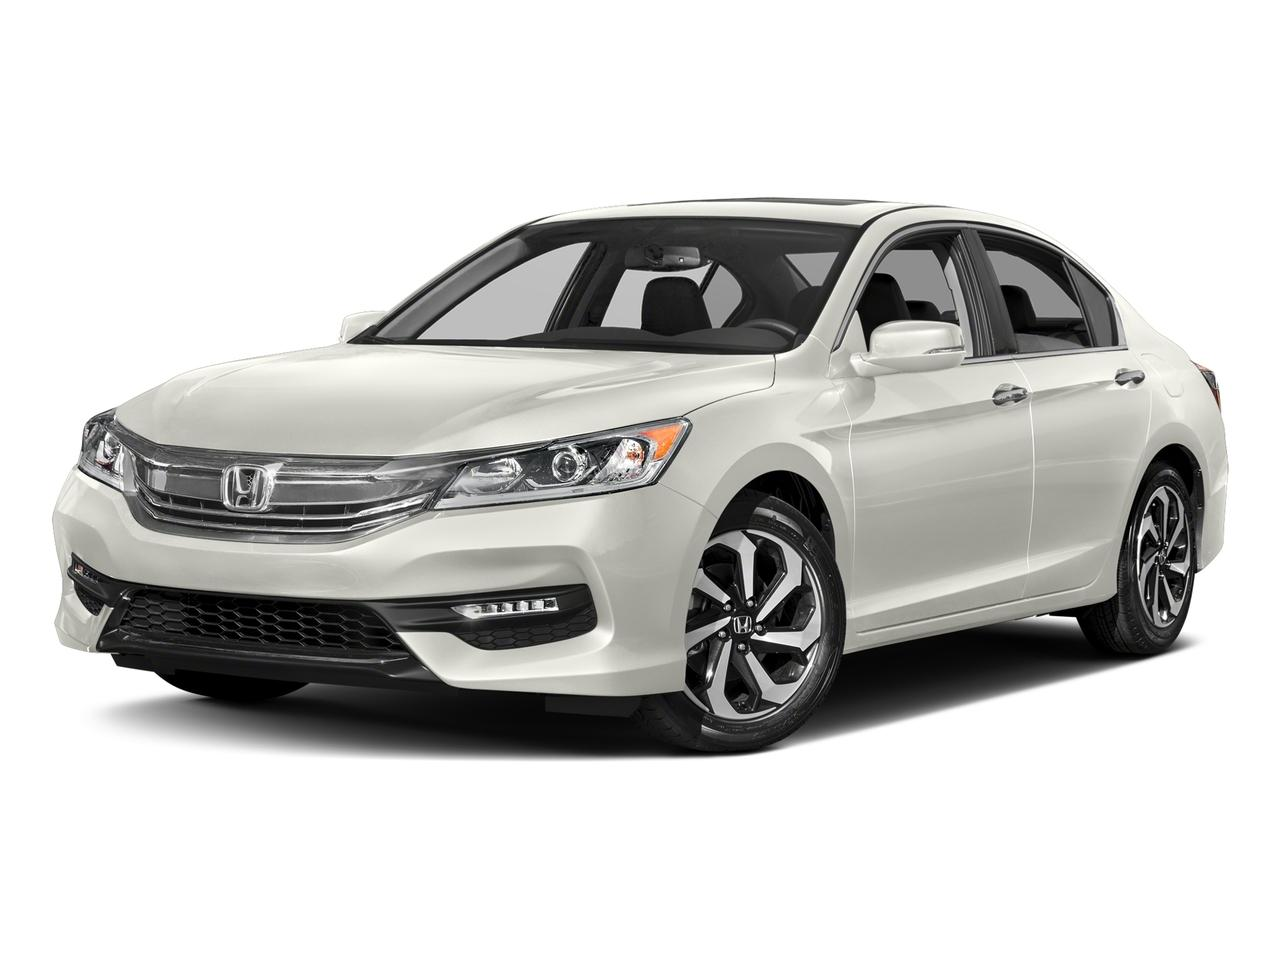 2017 Honda Accord Sedan Vehicle Photo in Oklahoma City, OK 73114